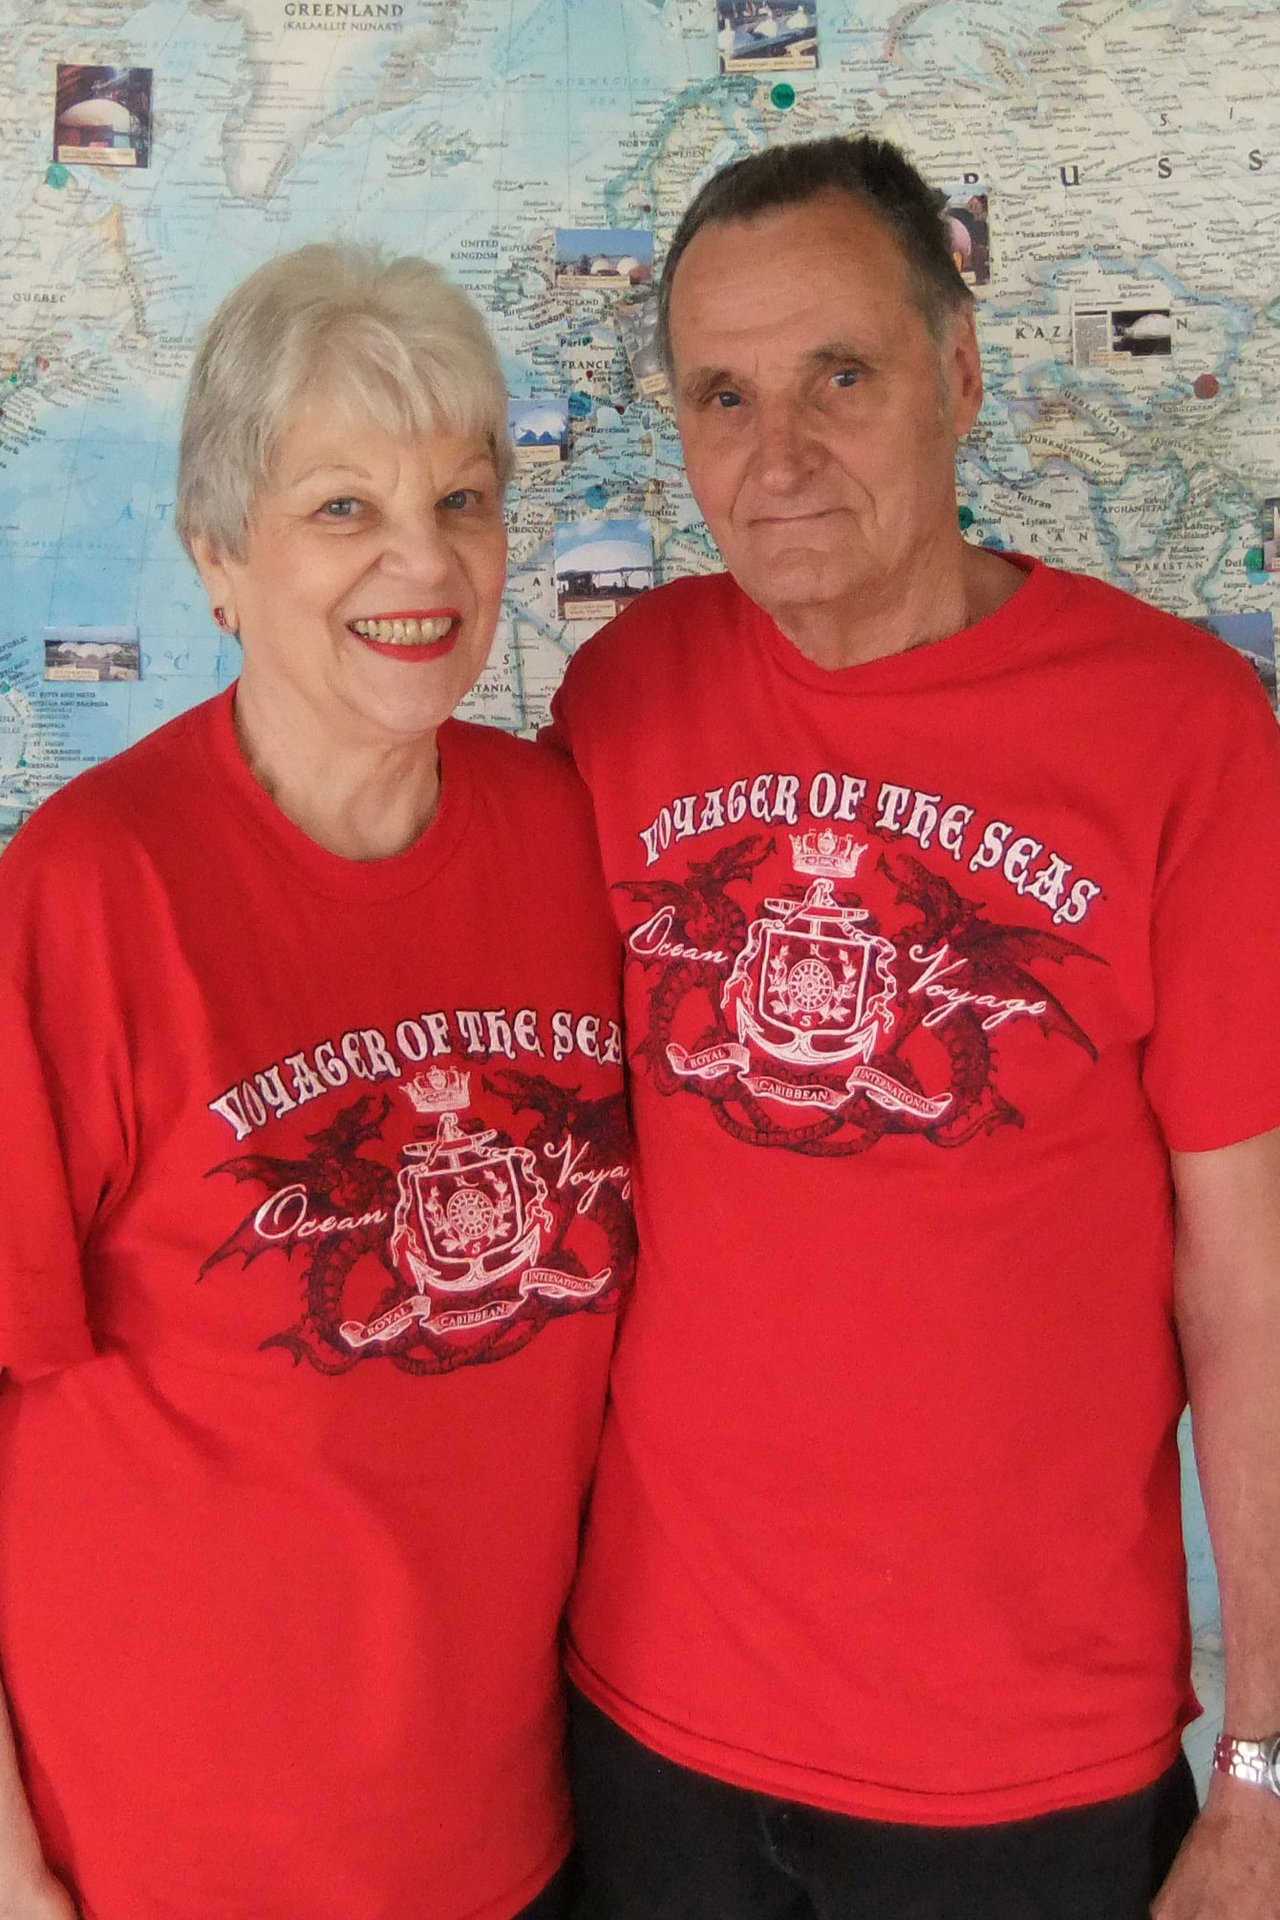 Two happy cruisers — Freda and James Parker enjoyed a Caribbean cruise to celebrate their 10th wedding anniversary and Freda's 75th birthday.